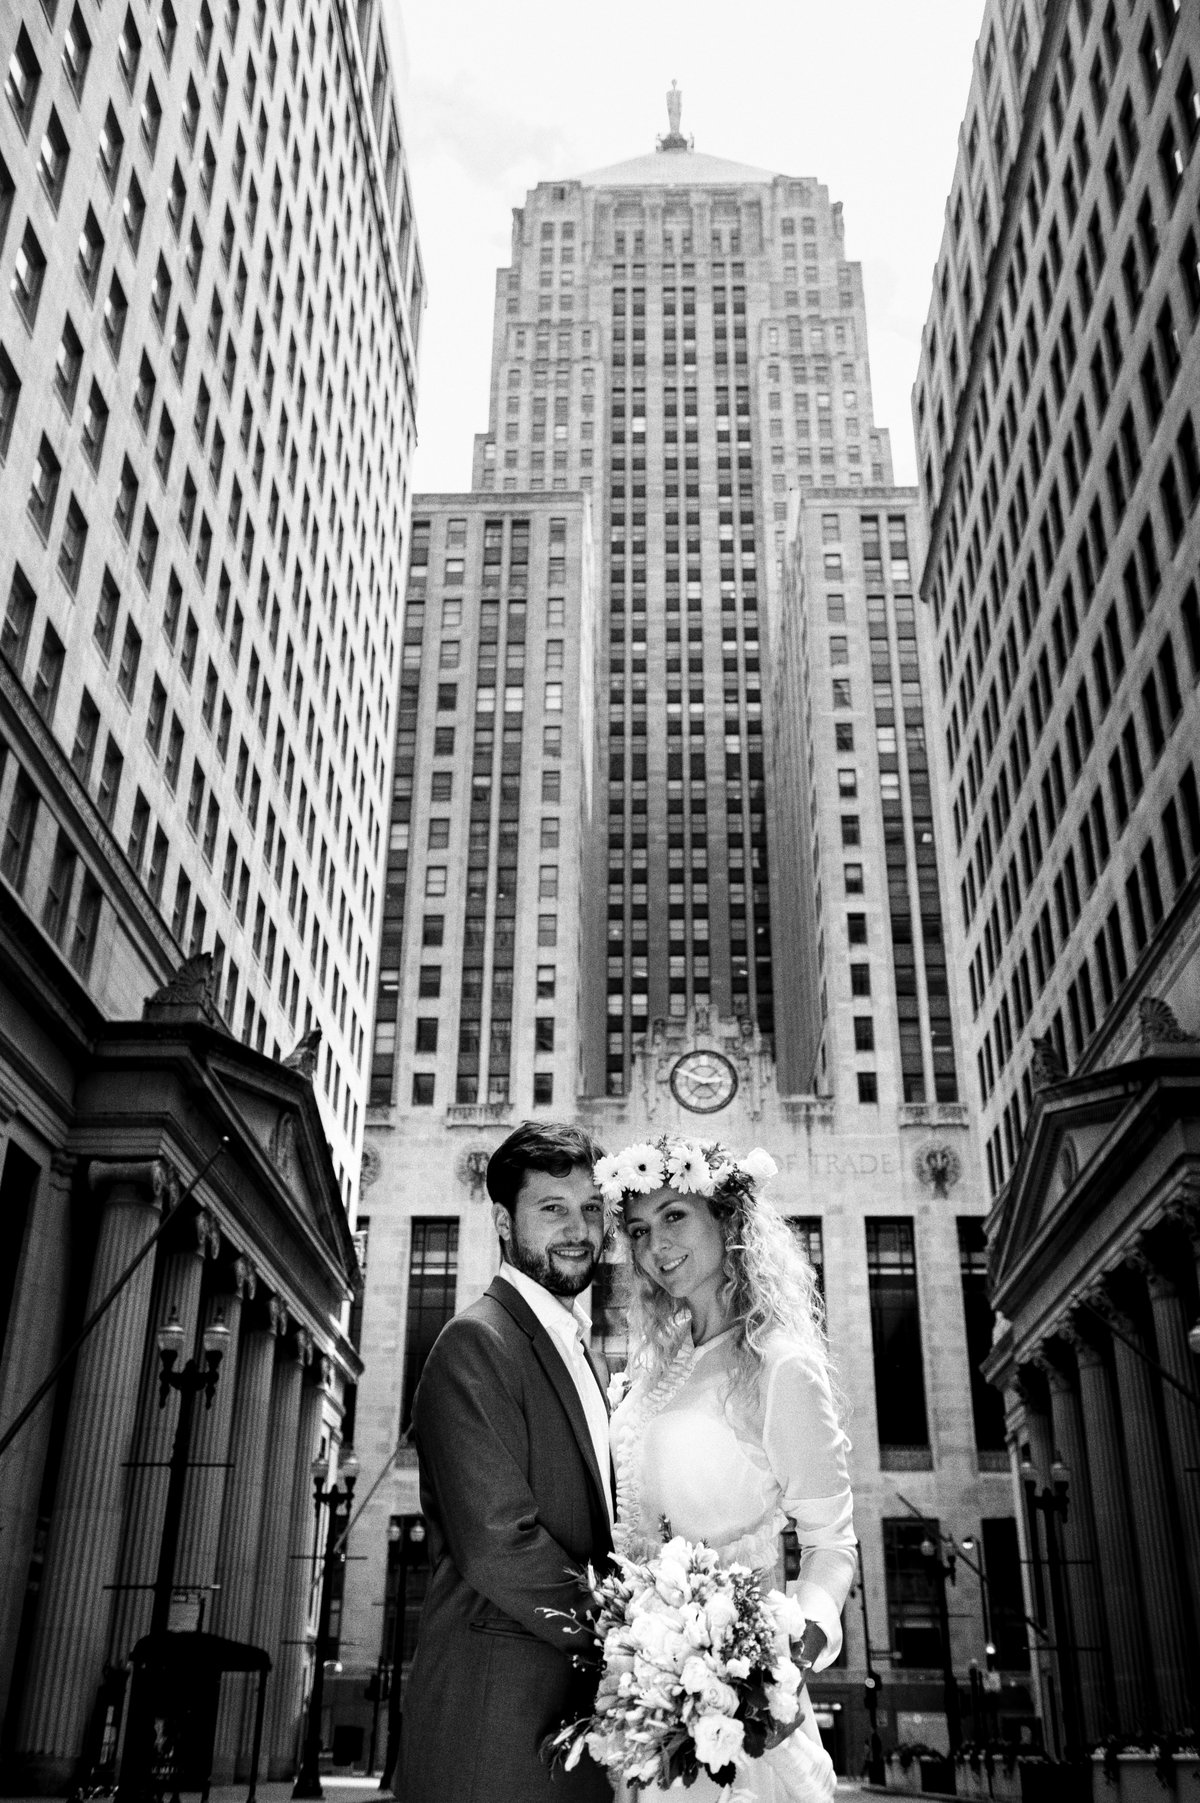 PIXSiGHT Photography - Chicago Wedding Photography